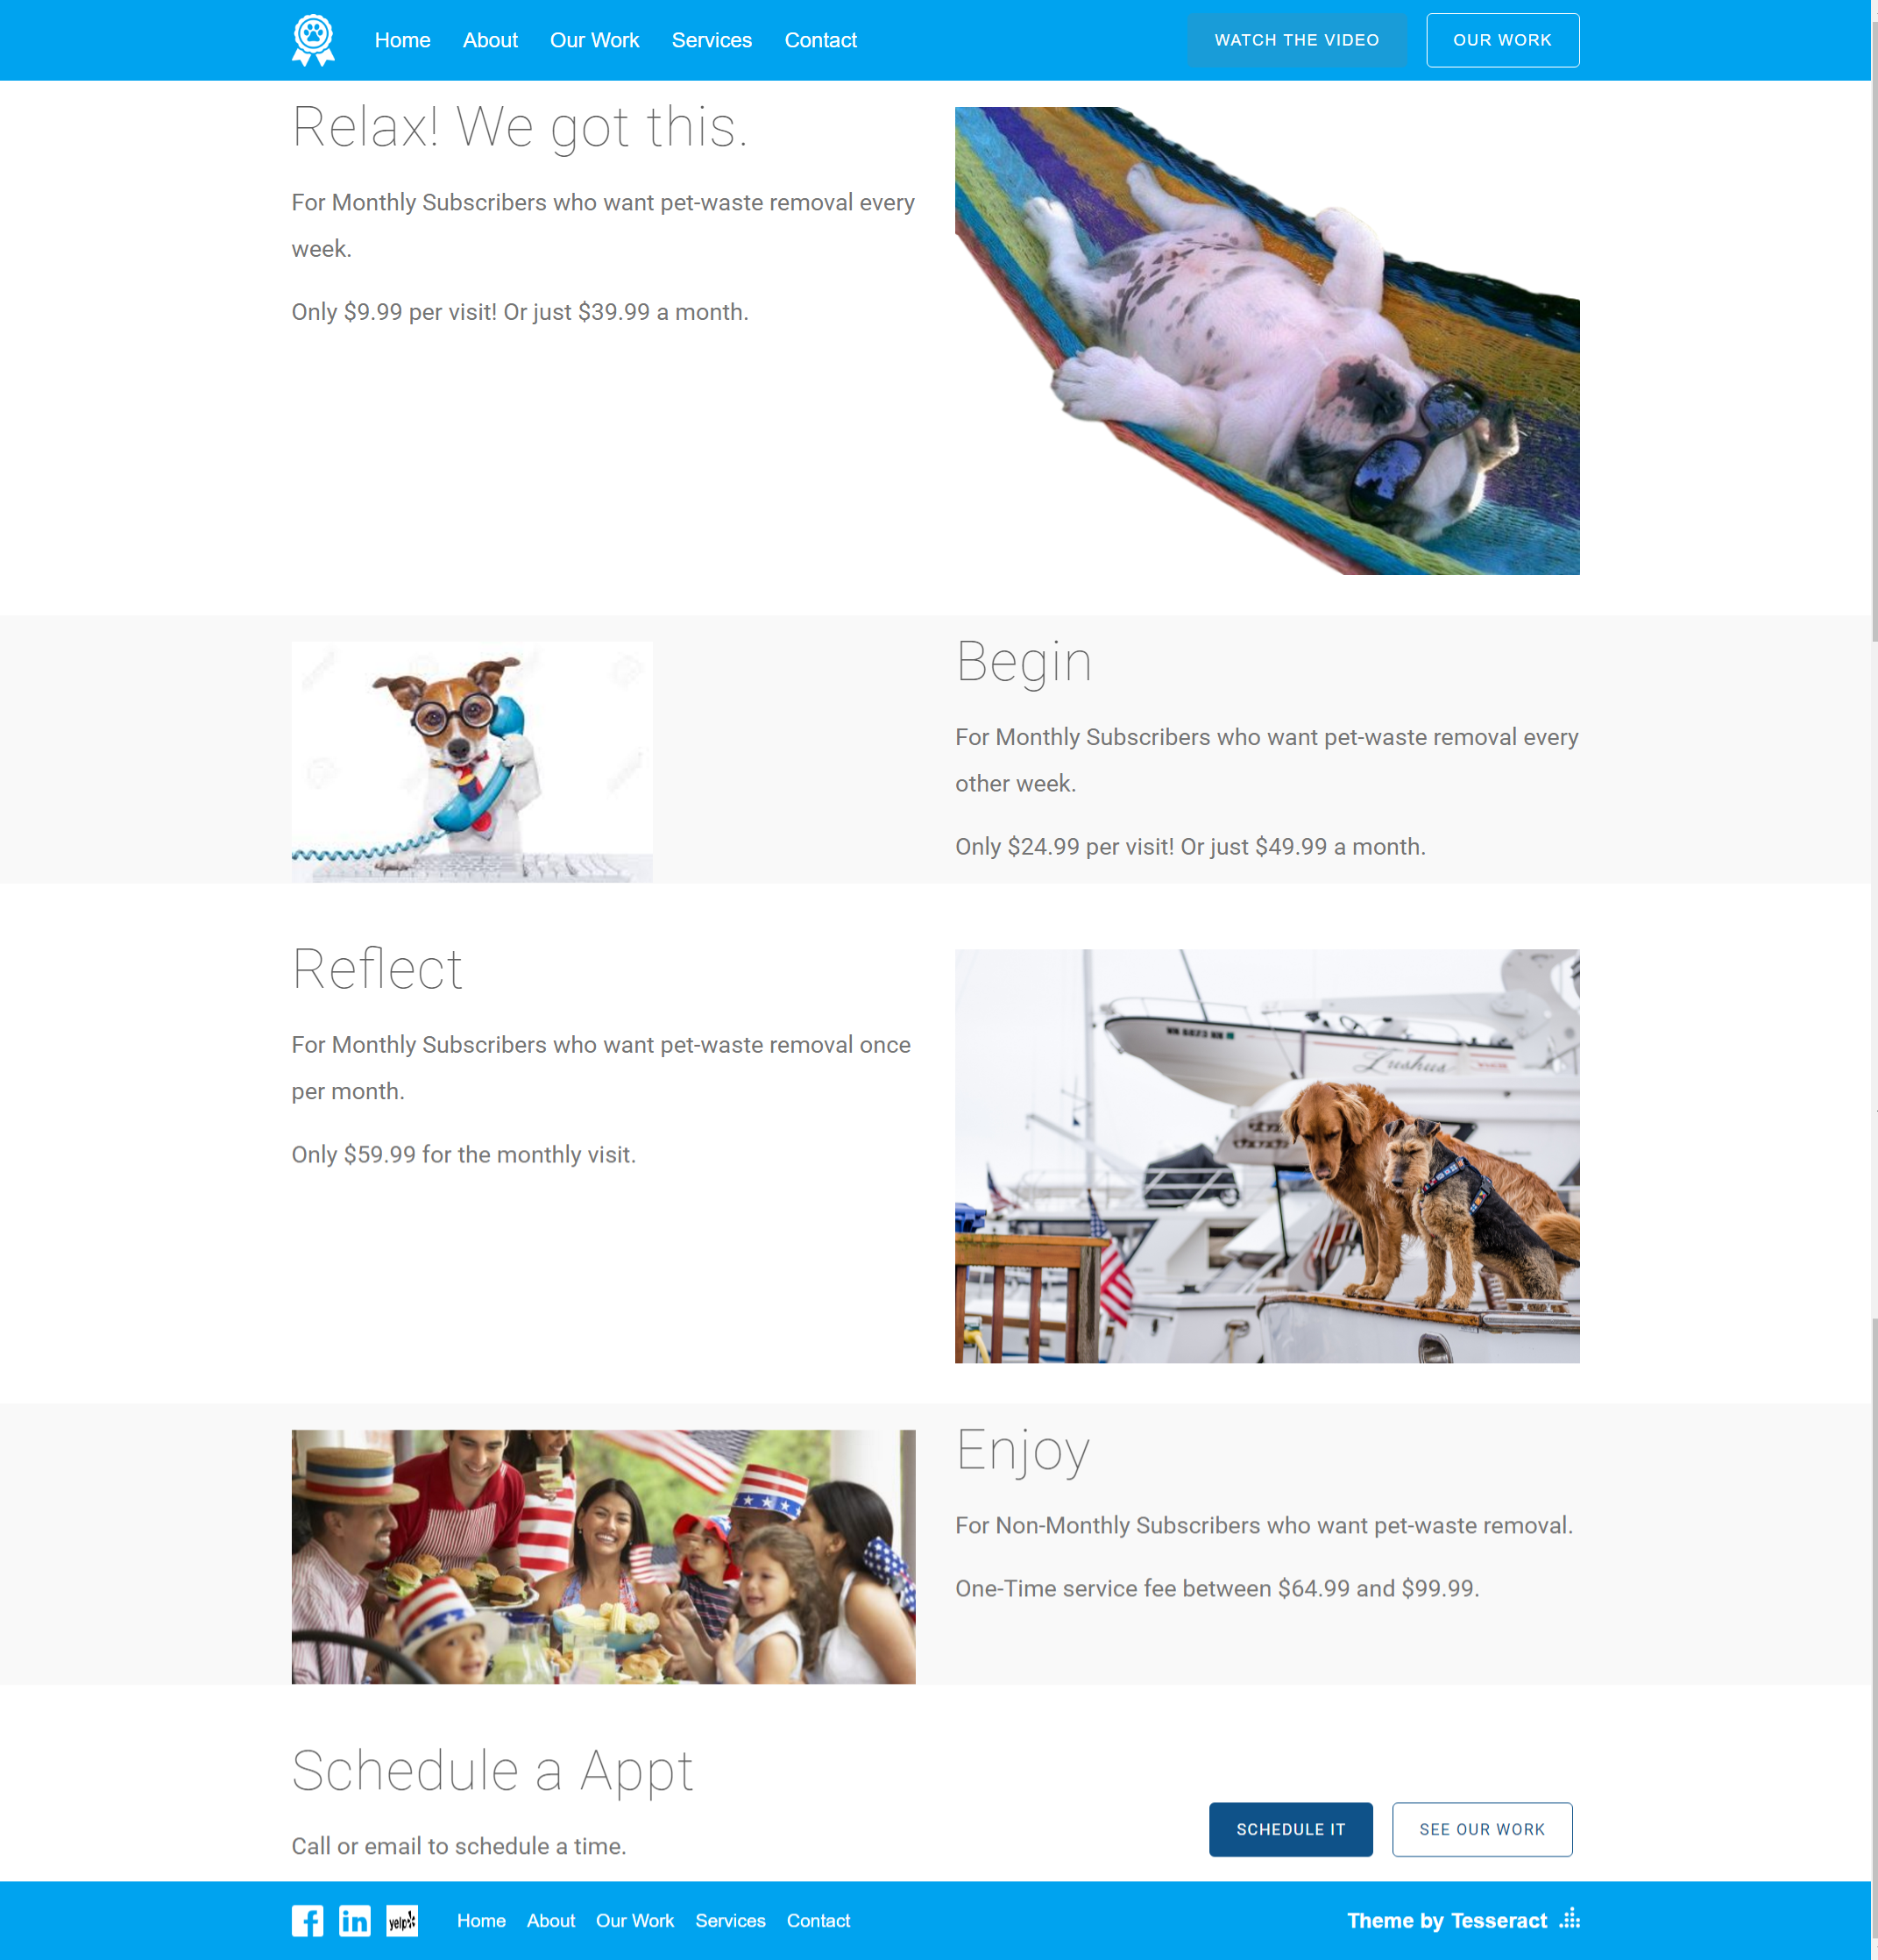 Services Page View